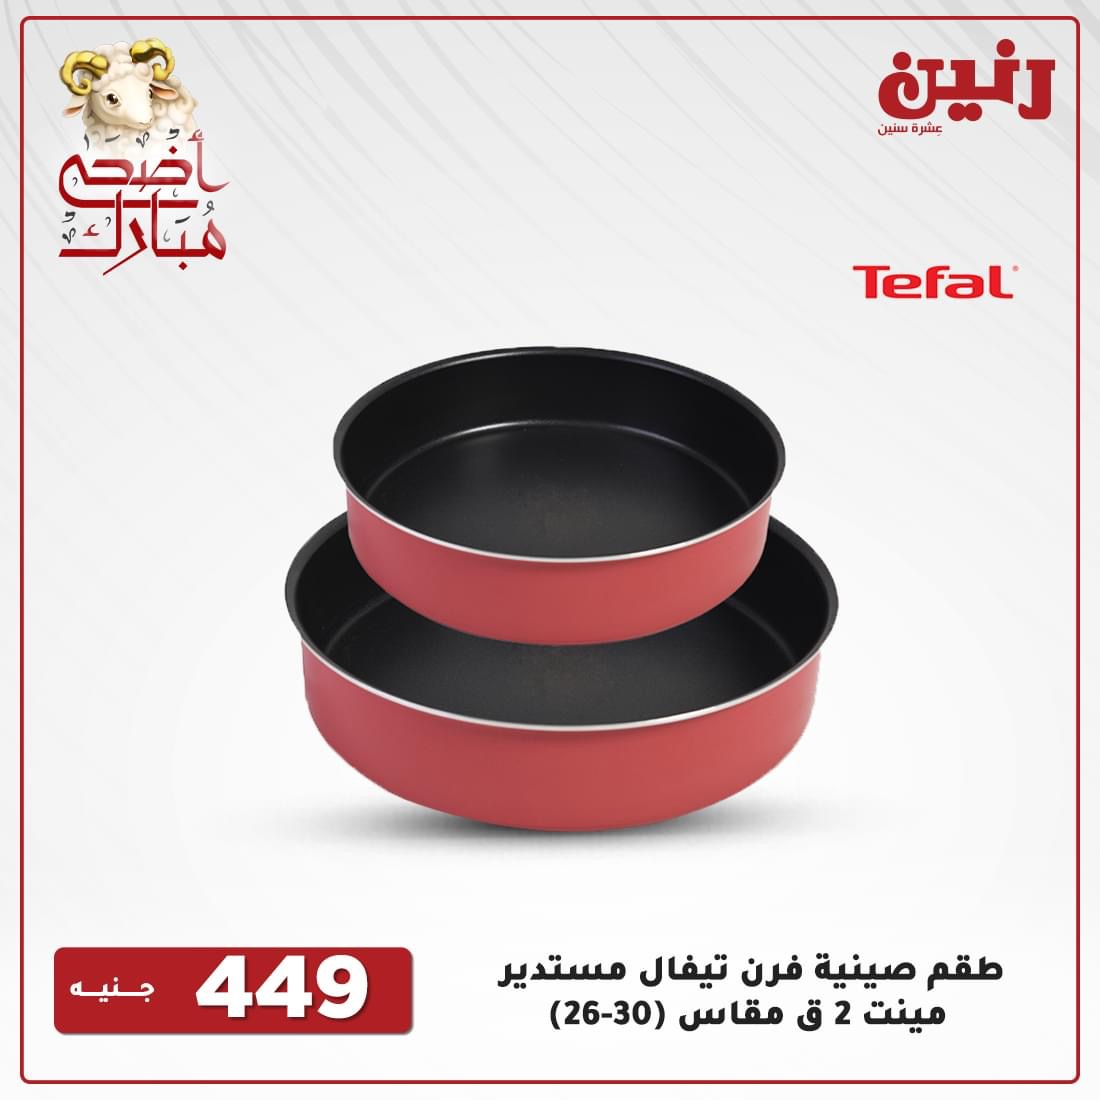 Raneen offers today for appliances and household appliances from July 22 to 24, 2021 36